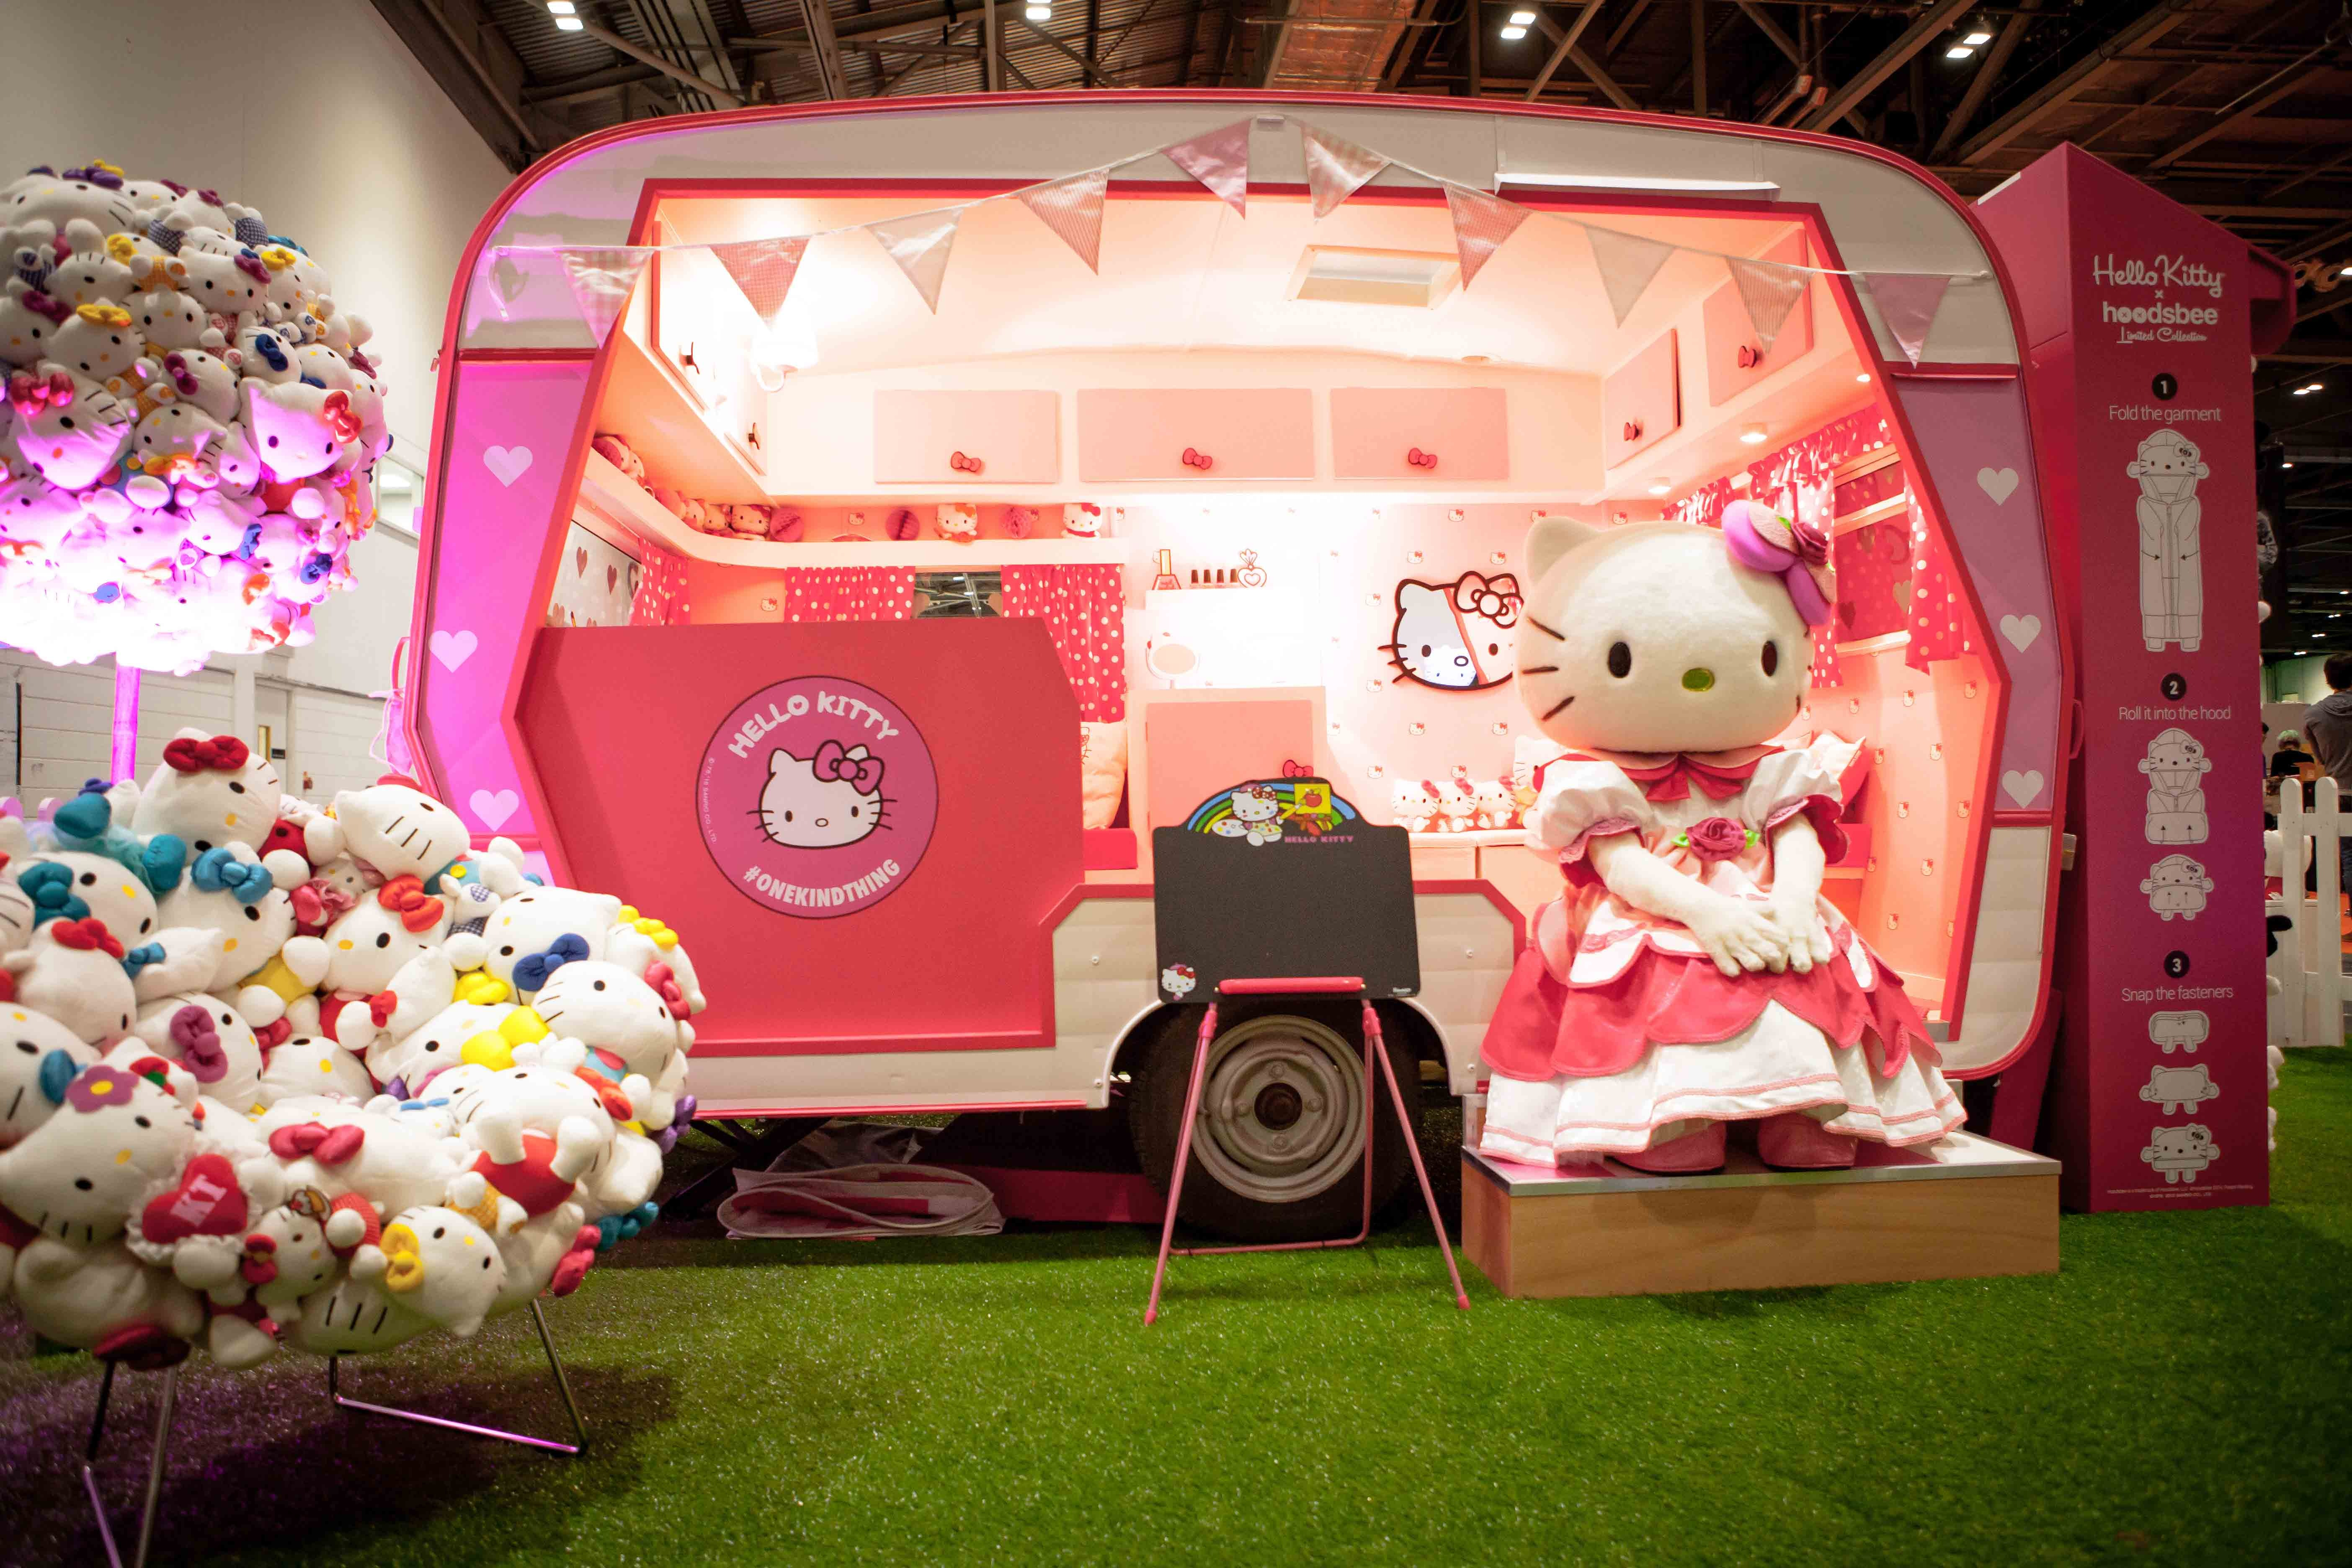 Bestival tickets and Hello Kitty merchandise sweepstakes